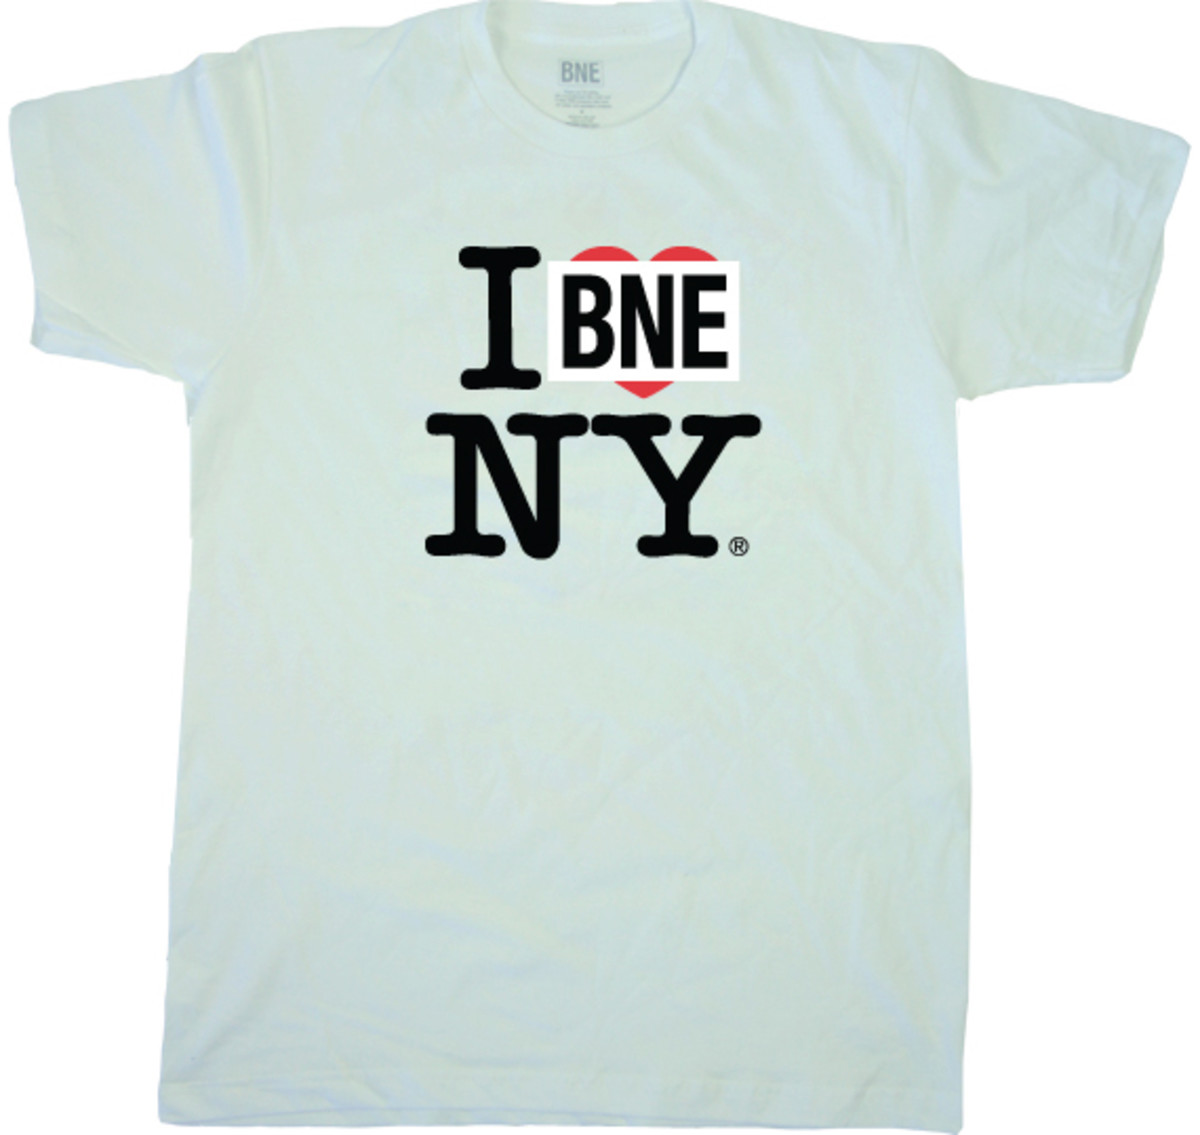 bne-water-foundation-fall-2012-t-shirt-collection-delivery-2-01